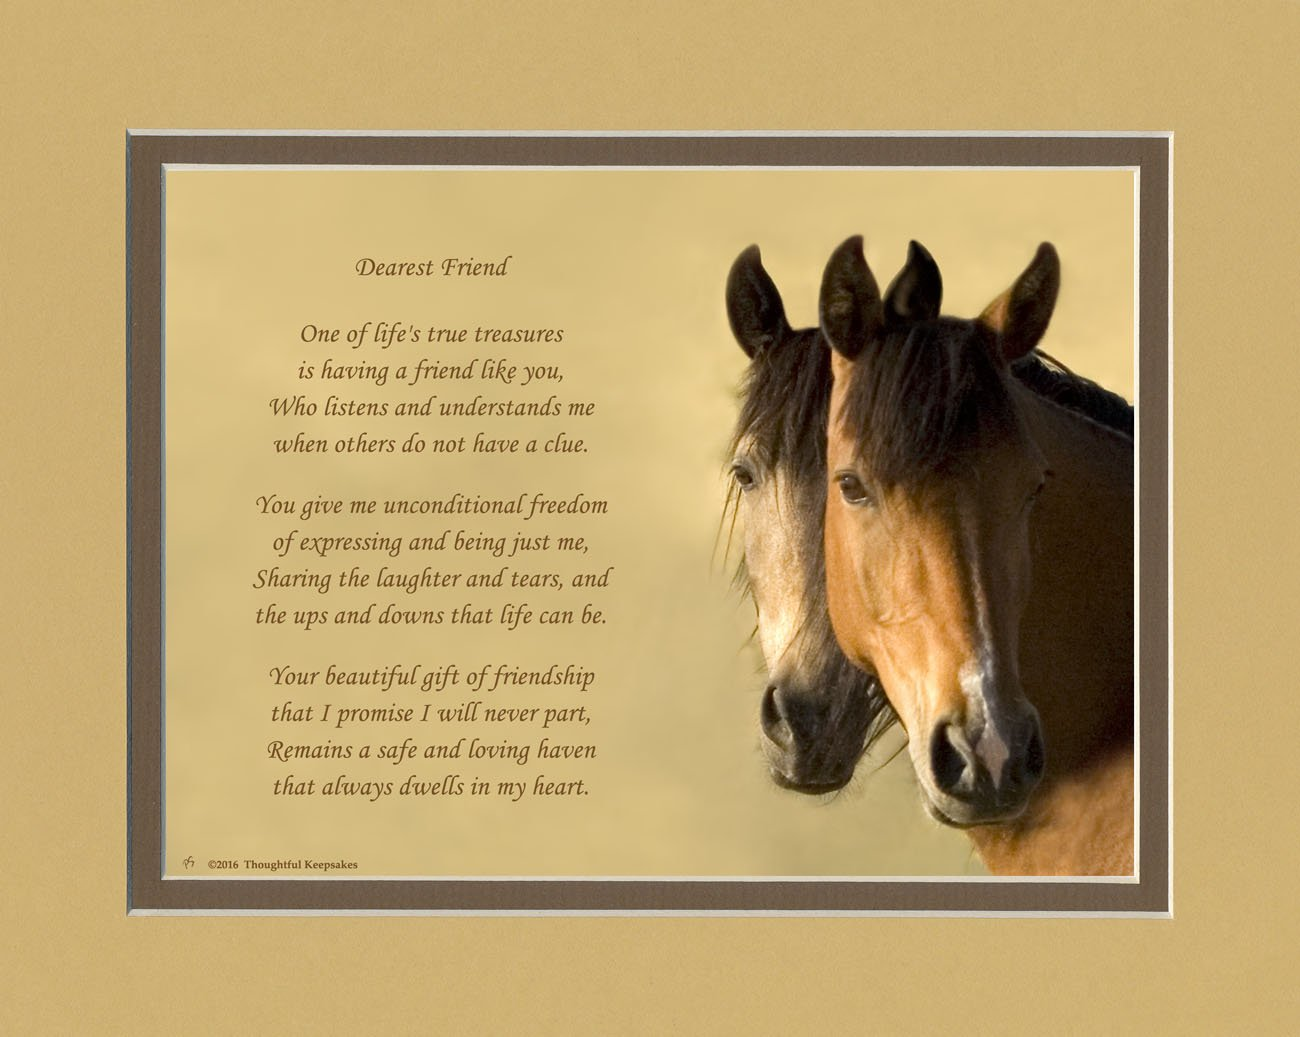 Friend Gifts. Horses Photo with Gift of Friendship Poem: 8x10 Double Matted. Special Birthday or for Friend. Great Unique Best